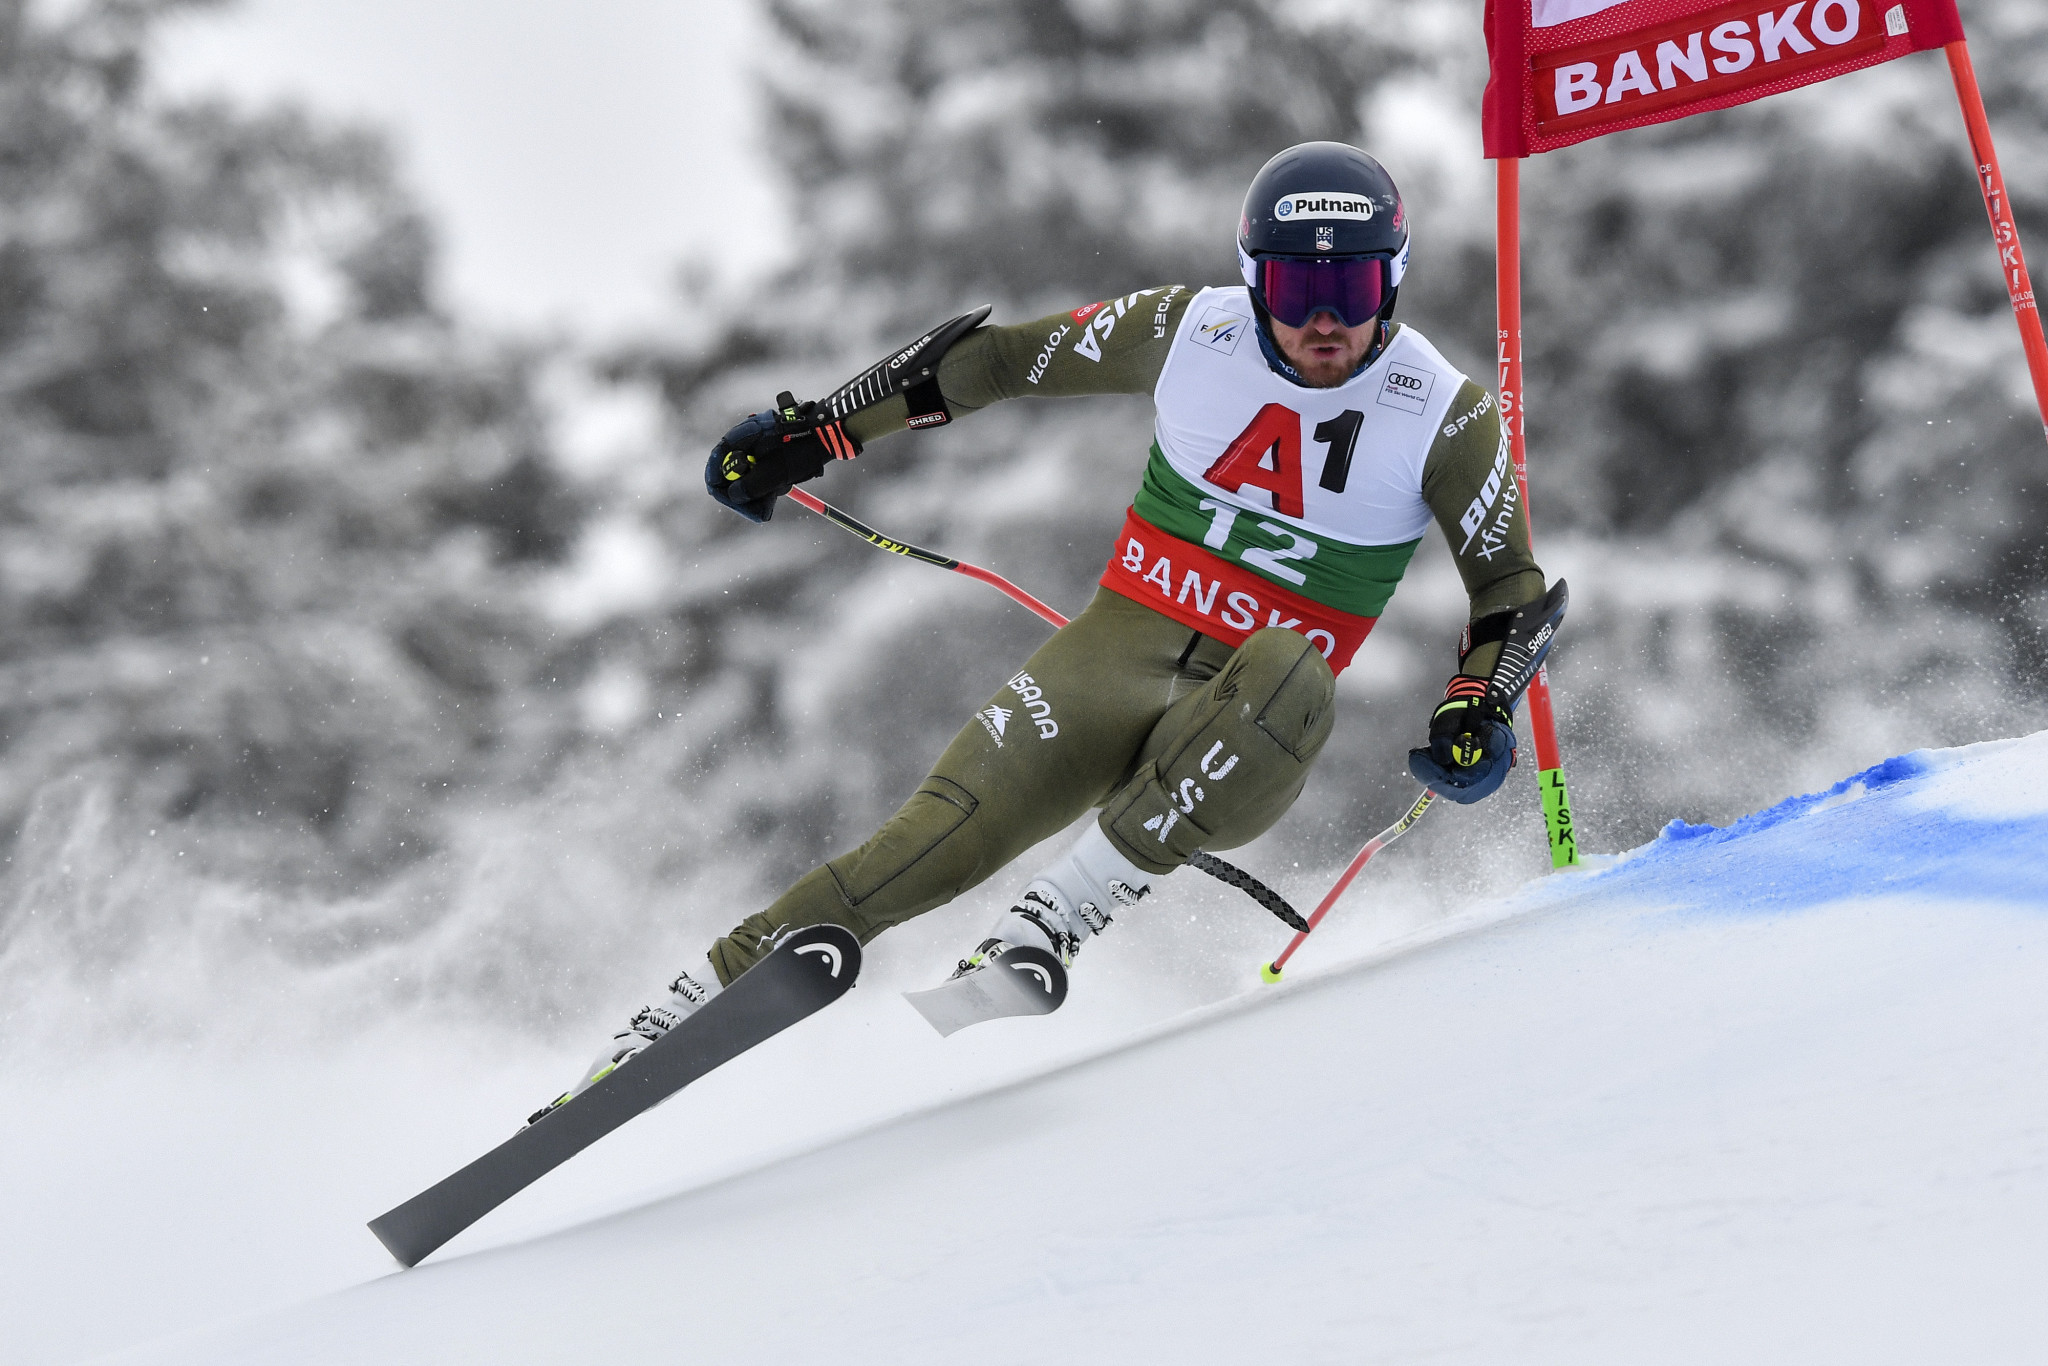 Olympic men's giant slalom gold medallist Ted Ligety is just one of U.S. Ski & Snowboard 's success stories under Luke Bodensteiner's guidance ©Getty Images